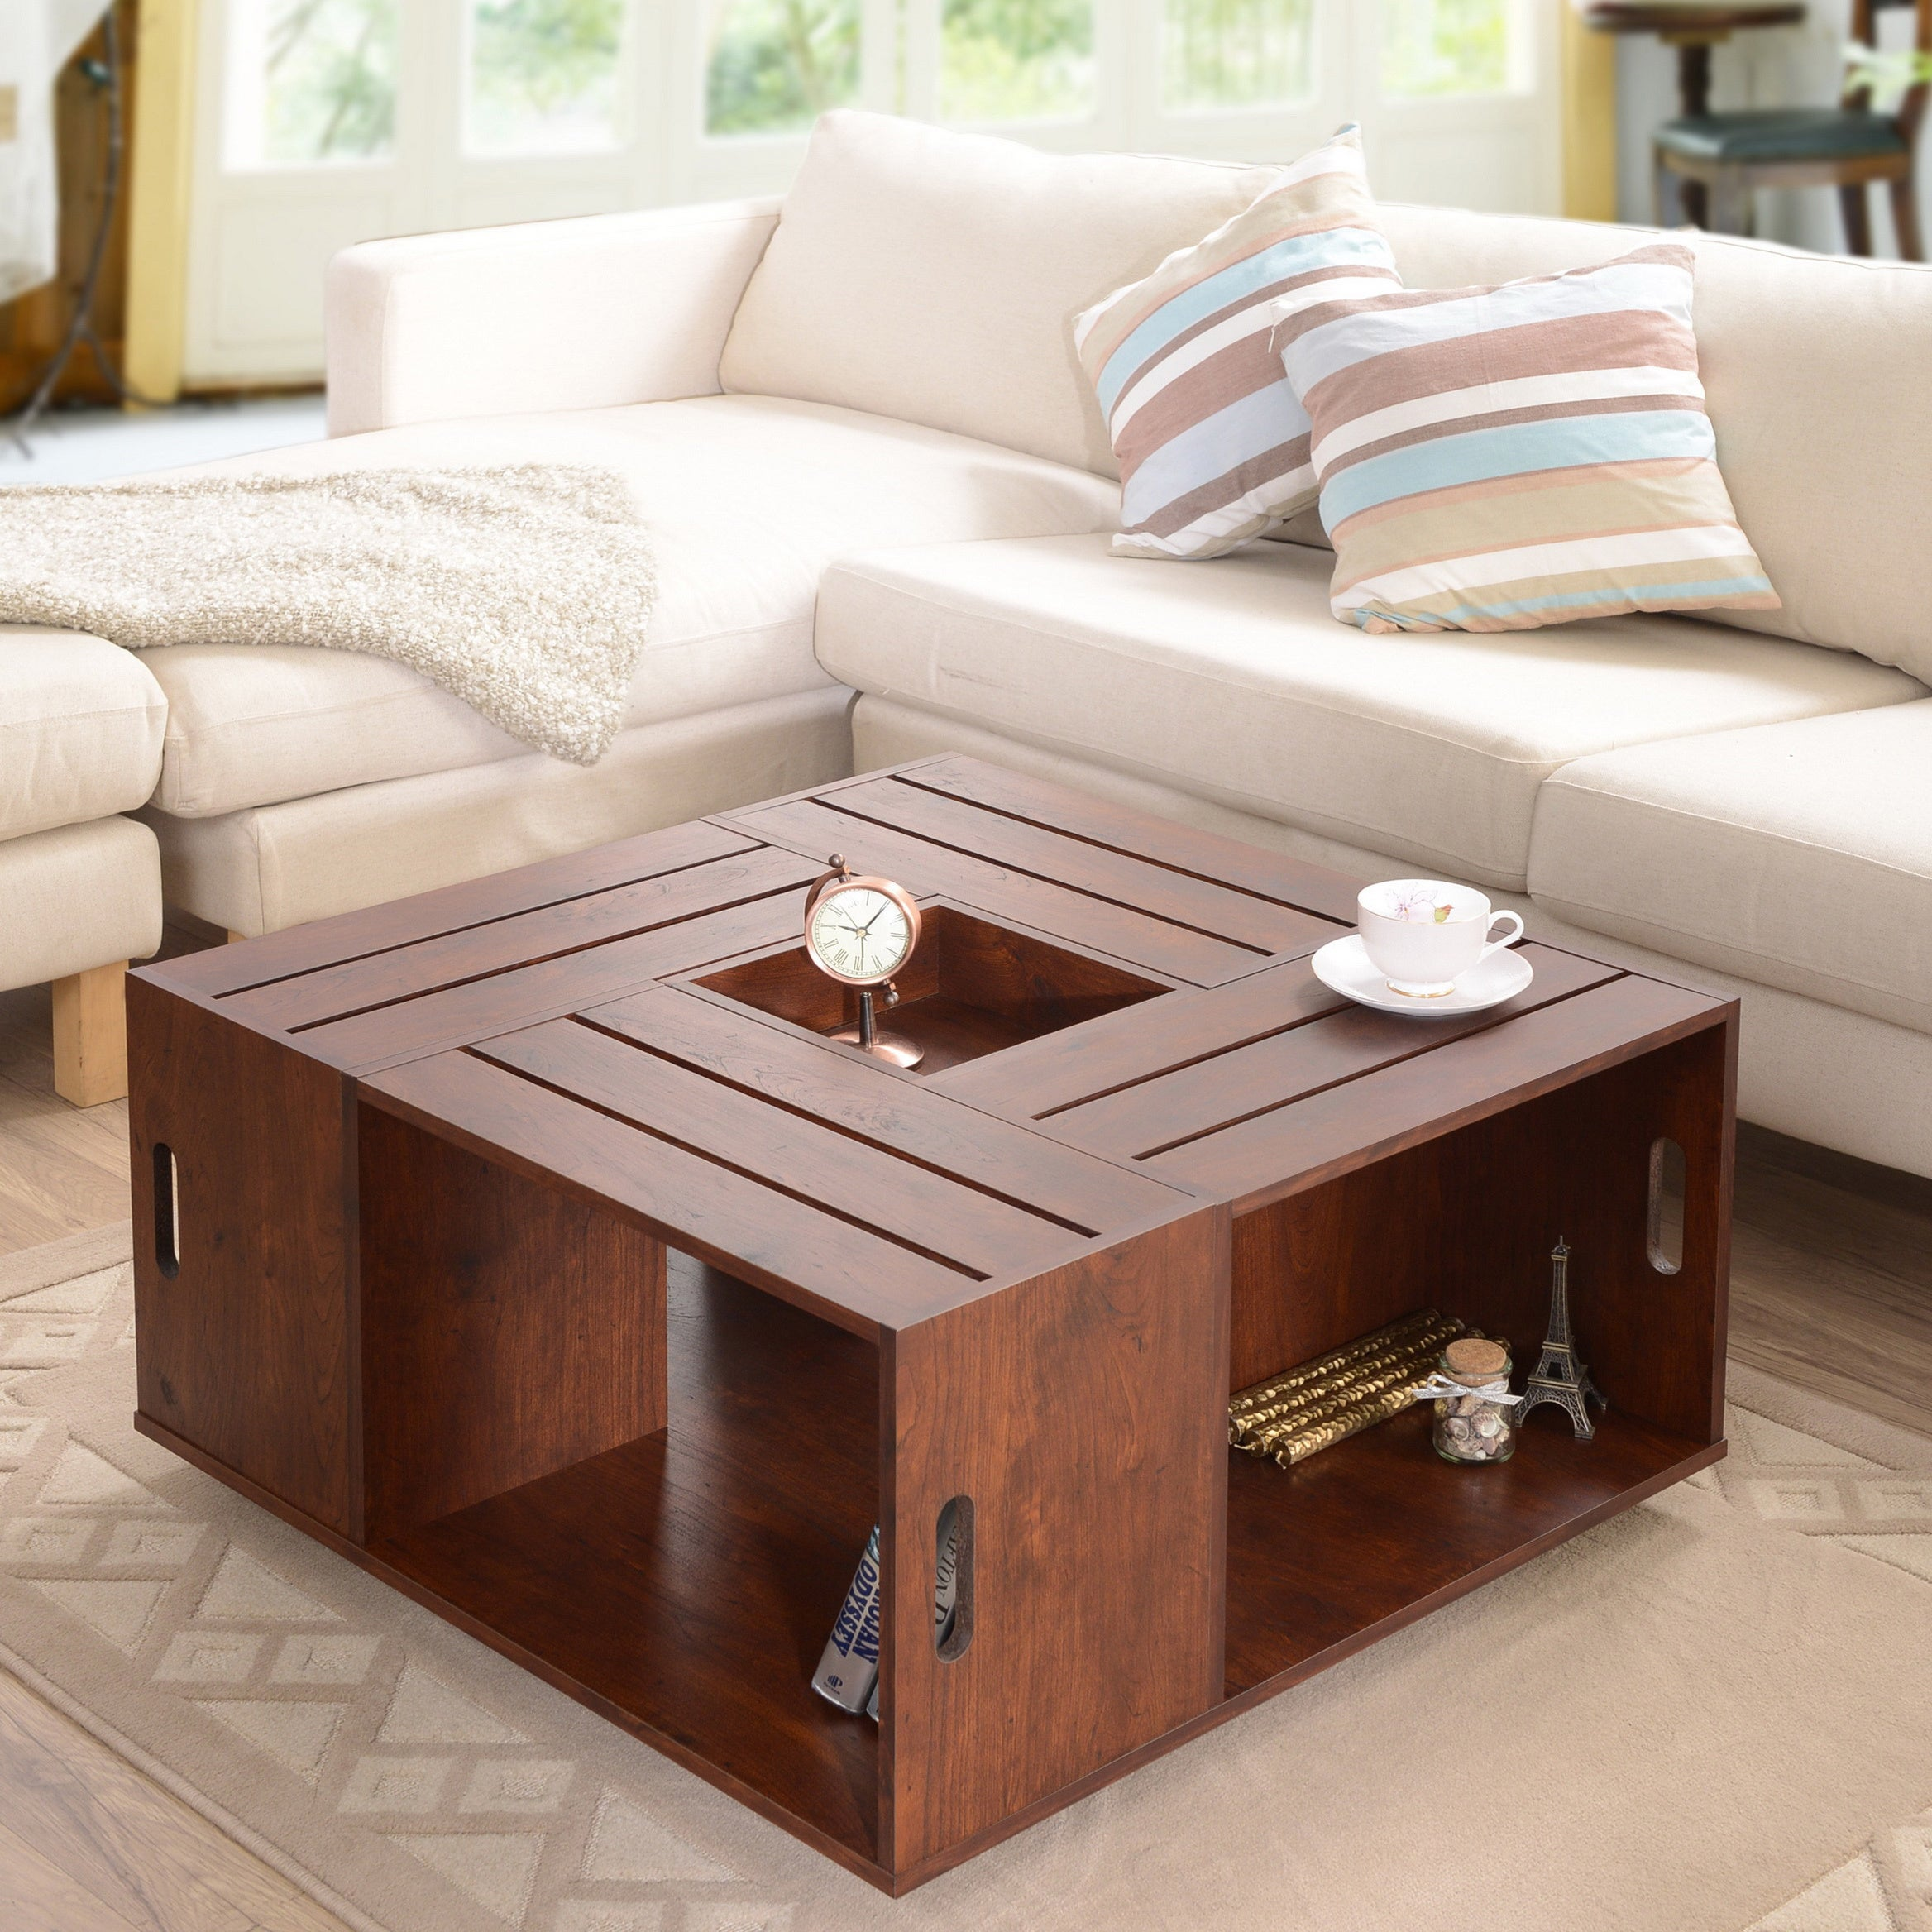 Furniture of america 39 the crate 39 square coffee table with for Coffee table made out of wooden crates